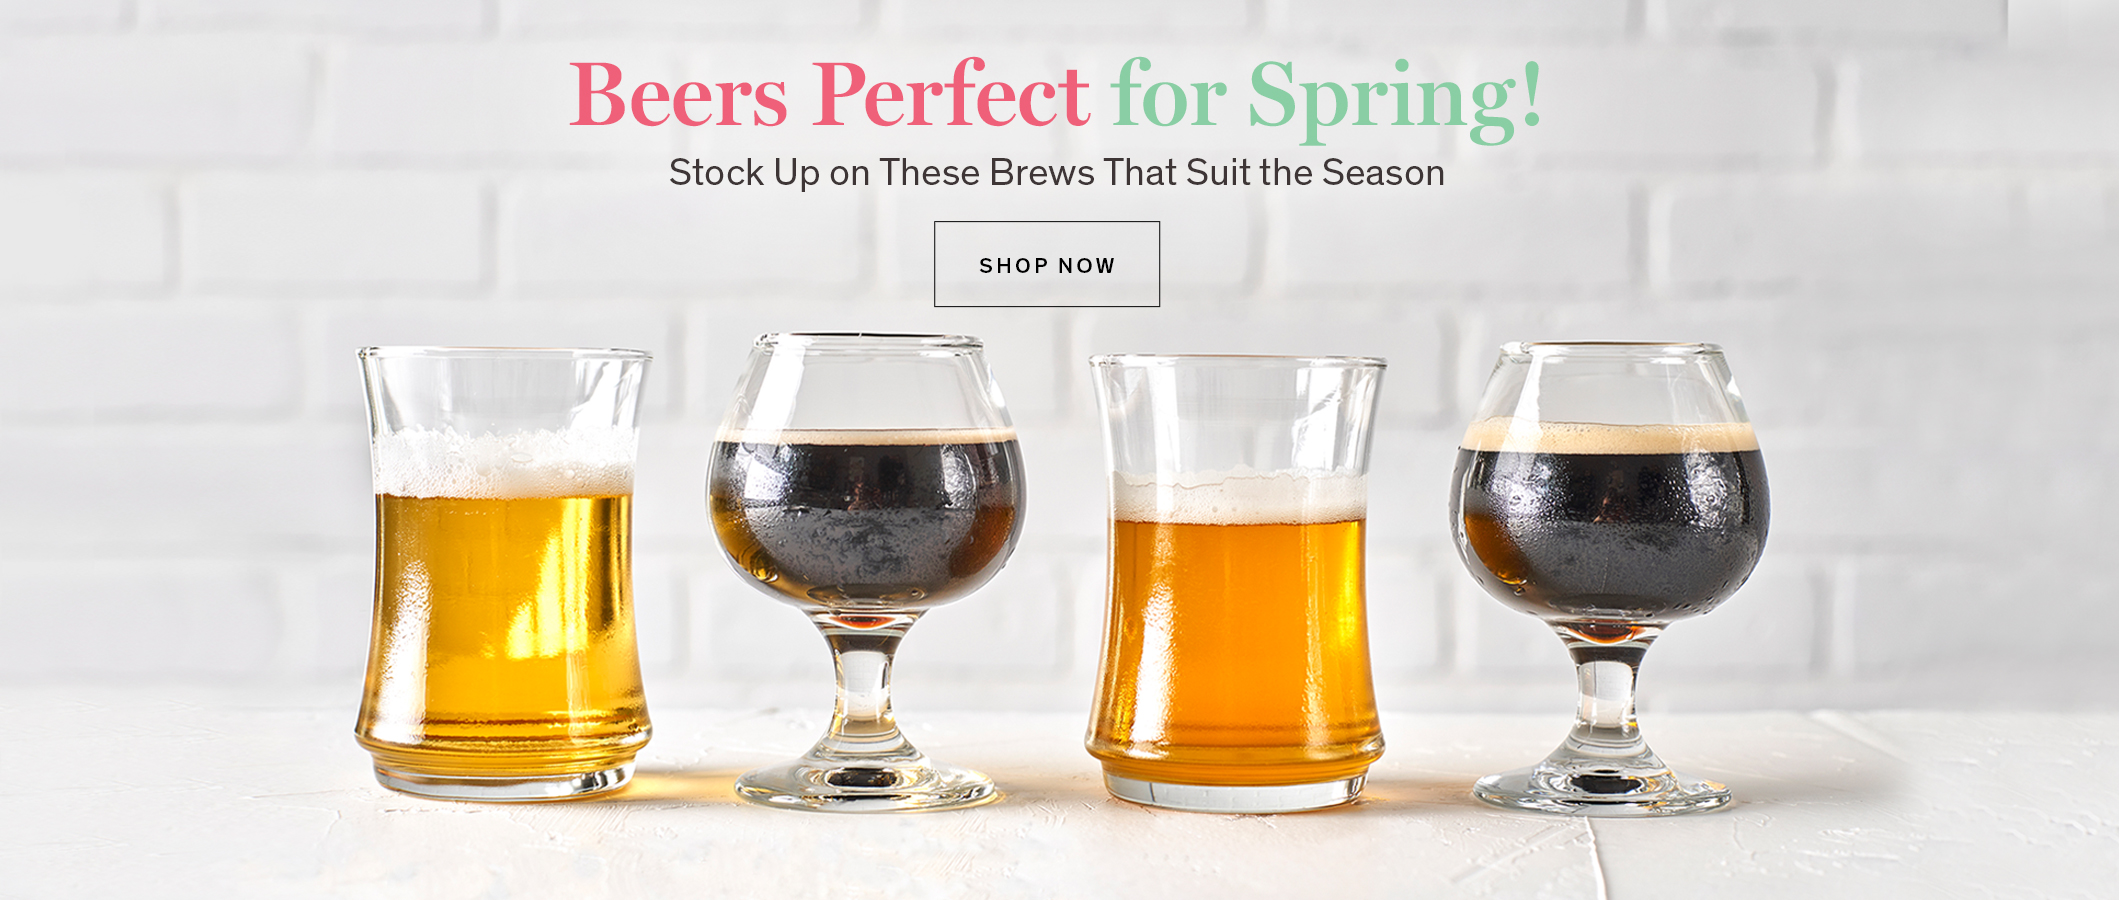 Beers Perfect for Spring!  Stock Up on These Brews That Suit the Season BUY NOW